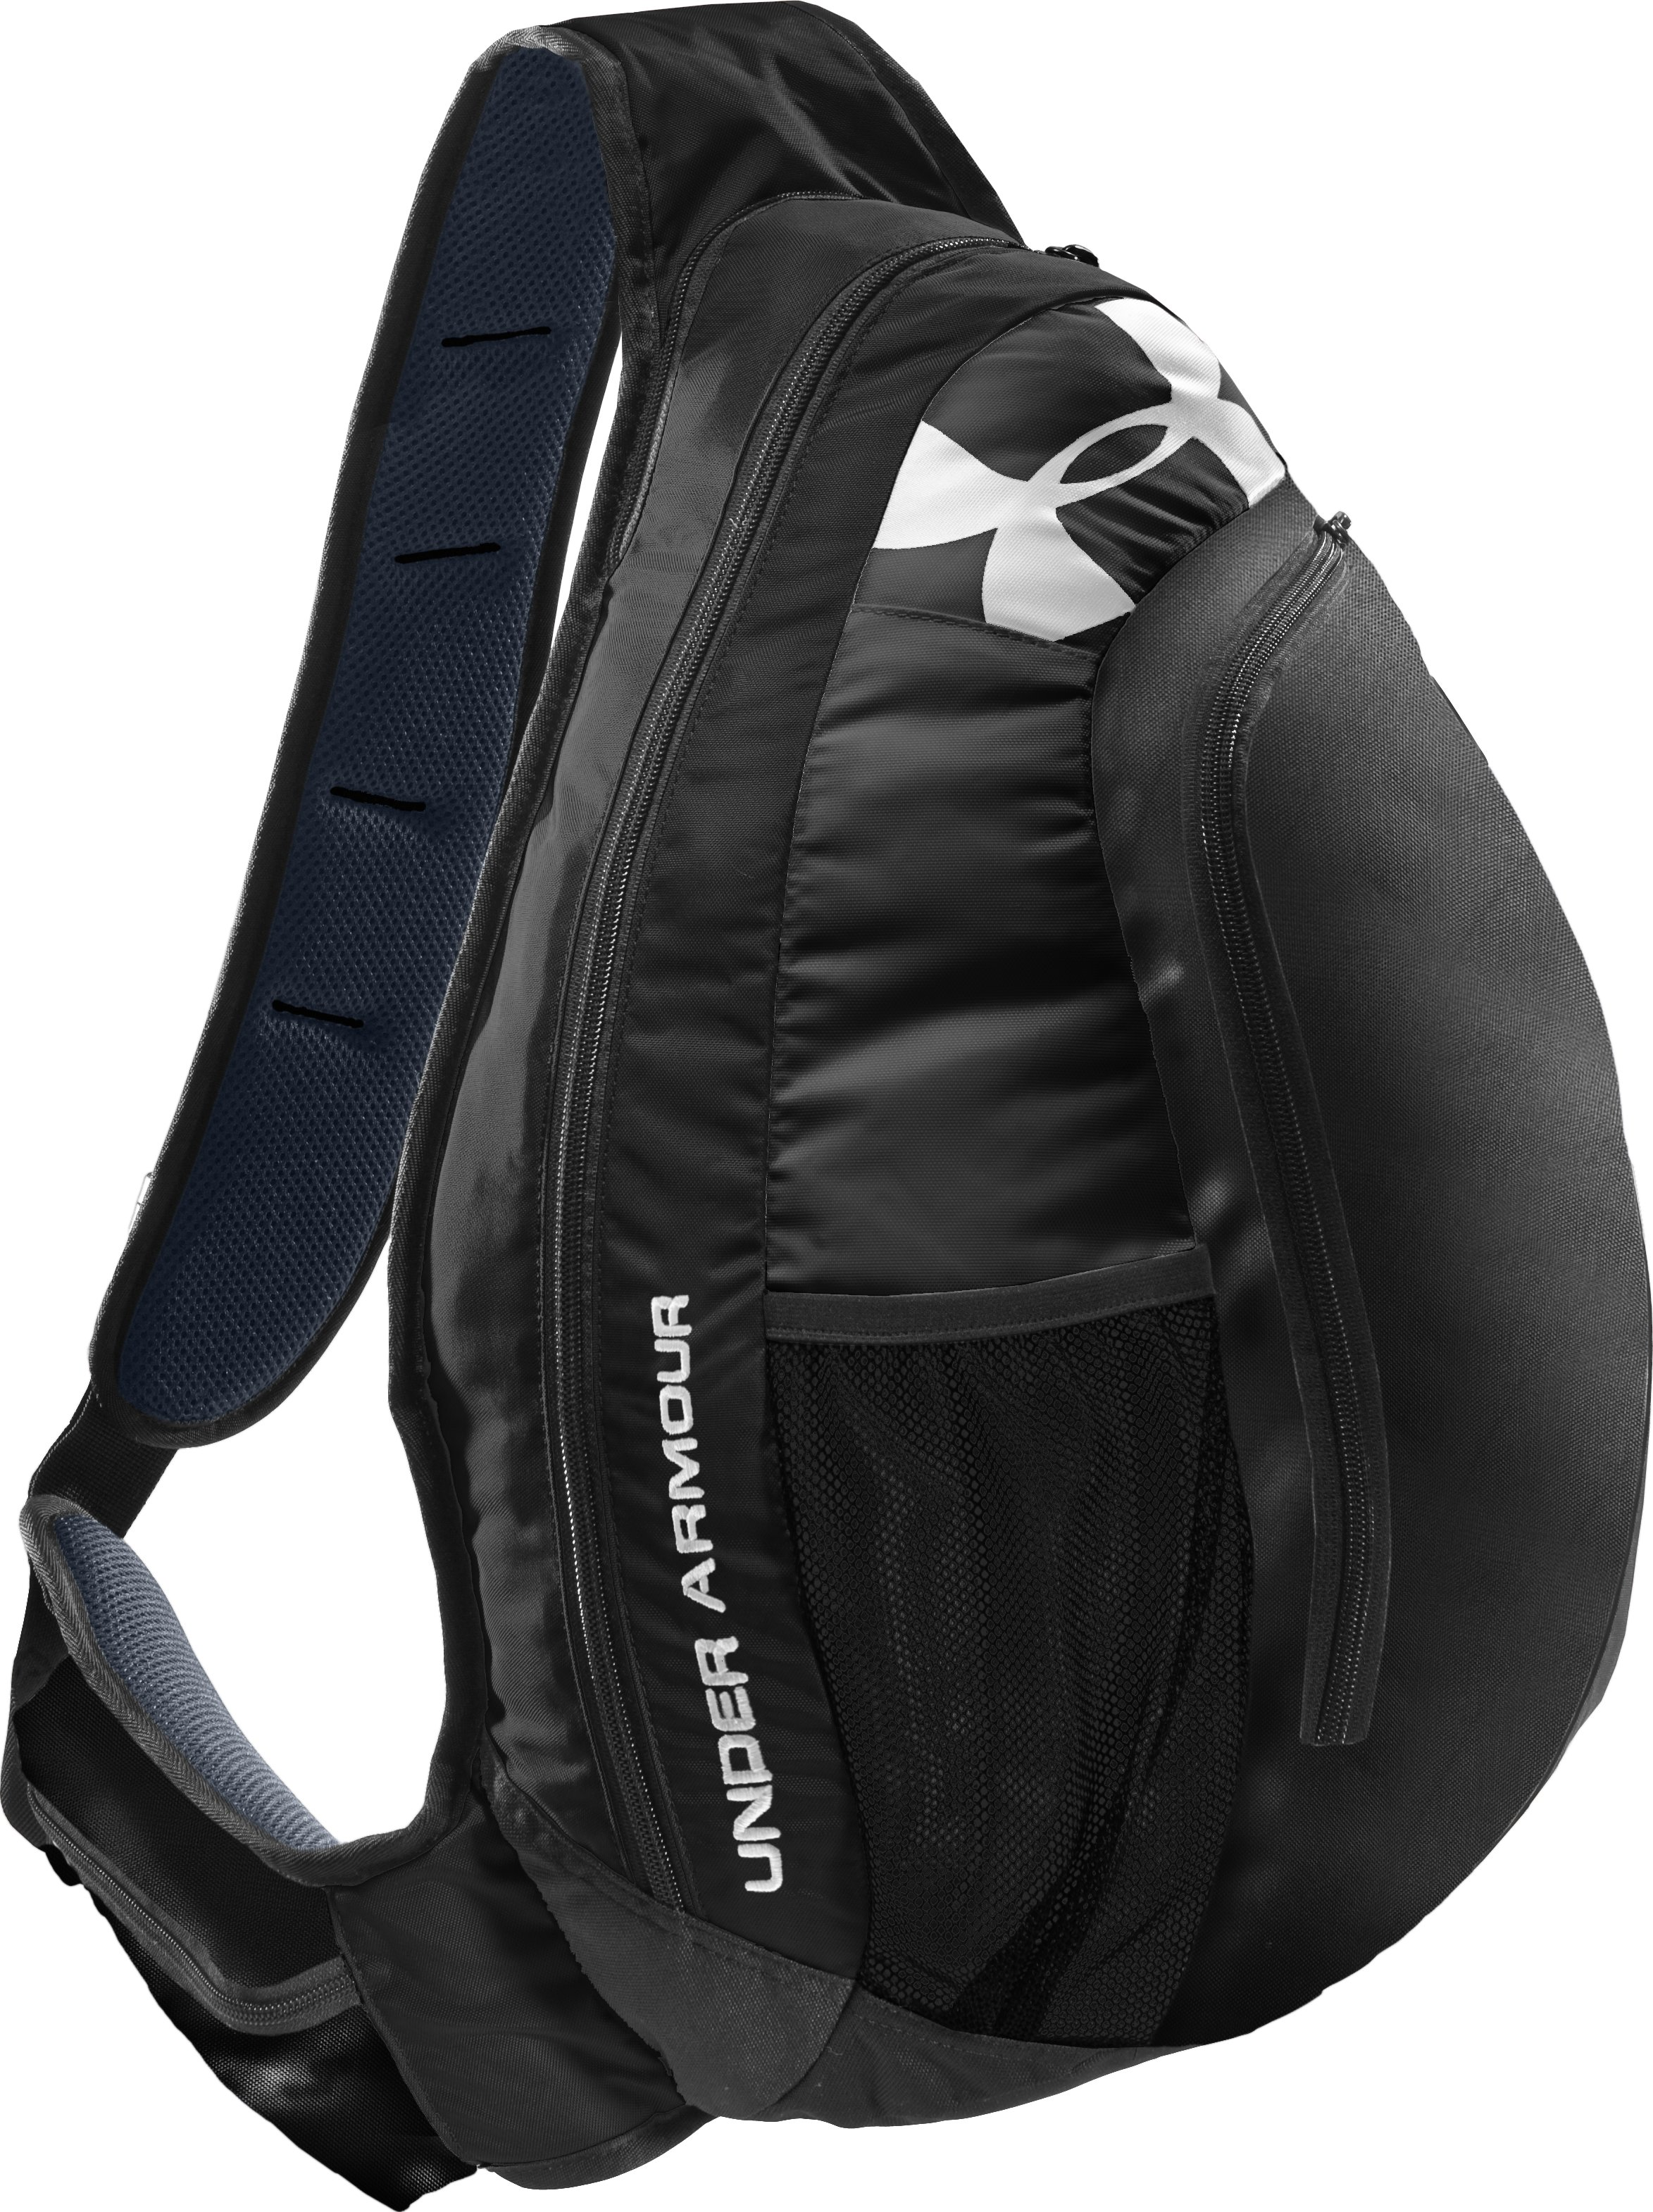 Khalon Sling Backpack, Black , zoomed image